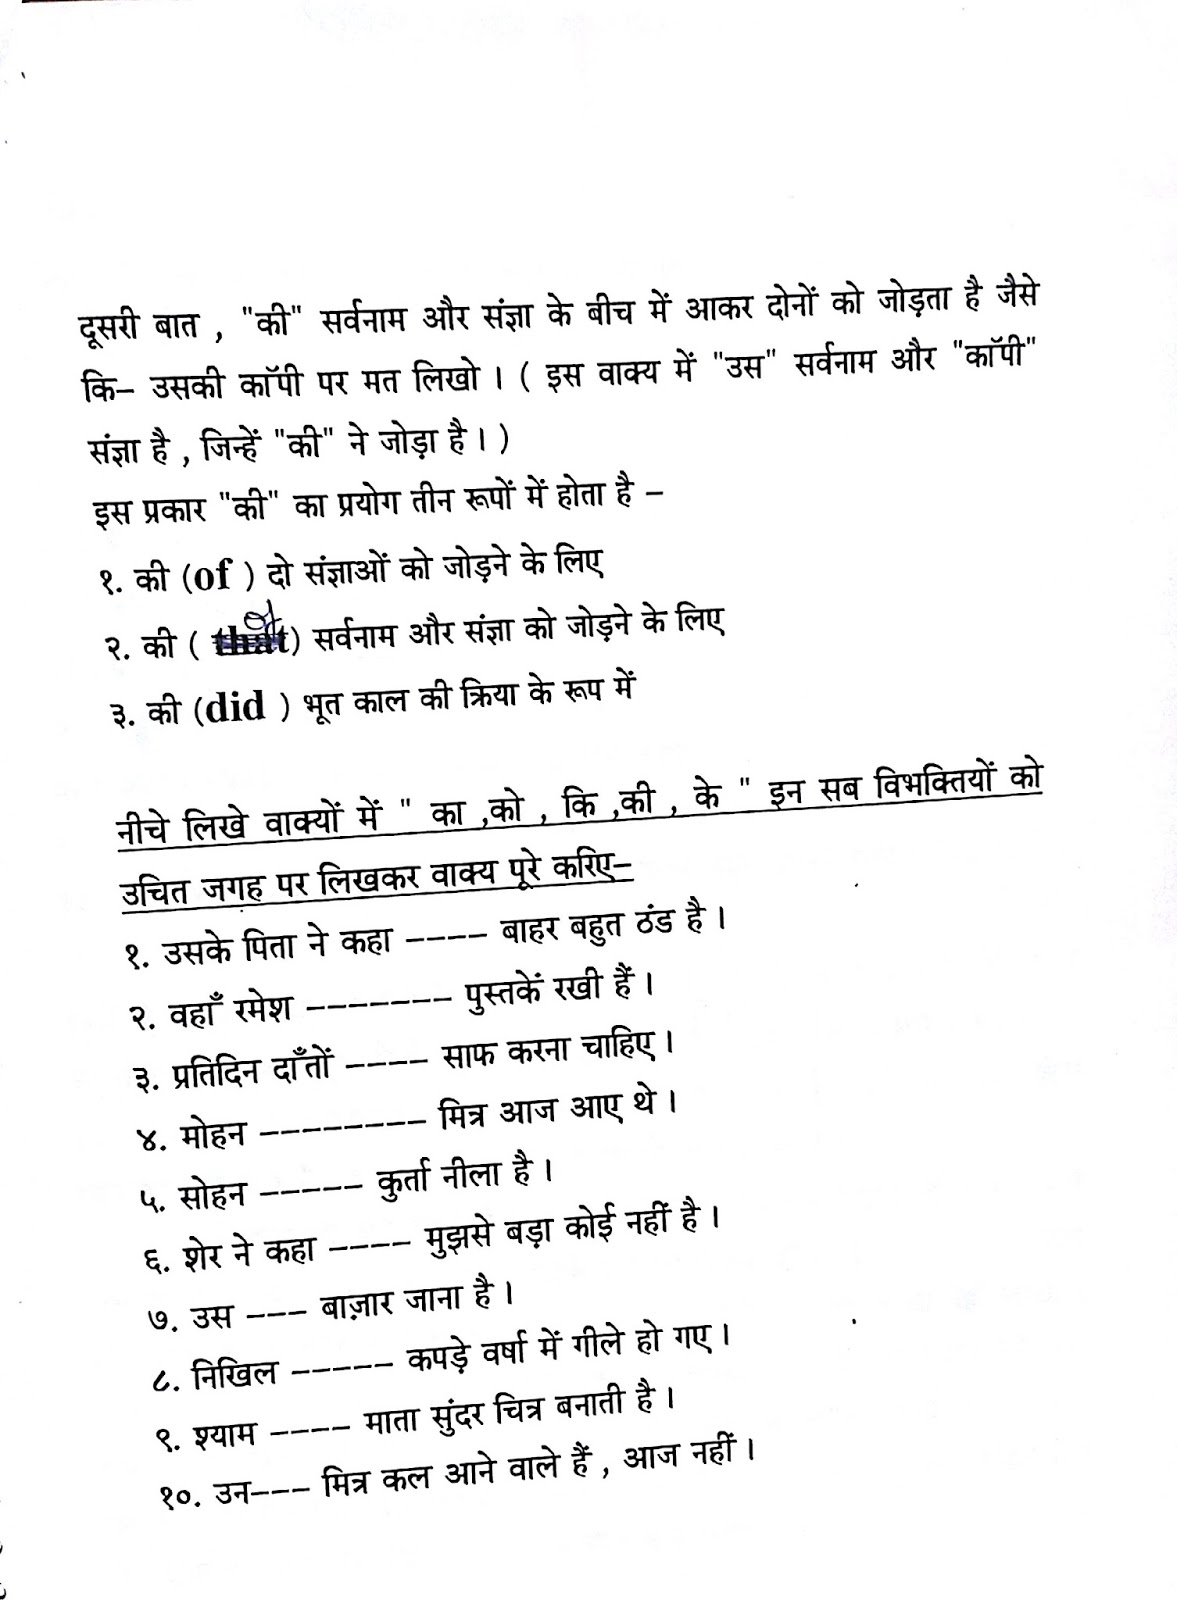 hindi grammar worksheets for grade 6 hindi grammar worksheets for grade 6 with answers. Black Bedroom Furniture Sets. Home Design Ideas